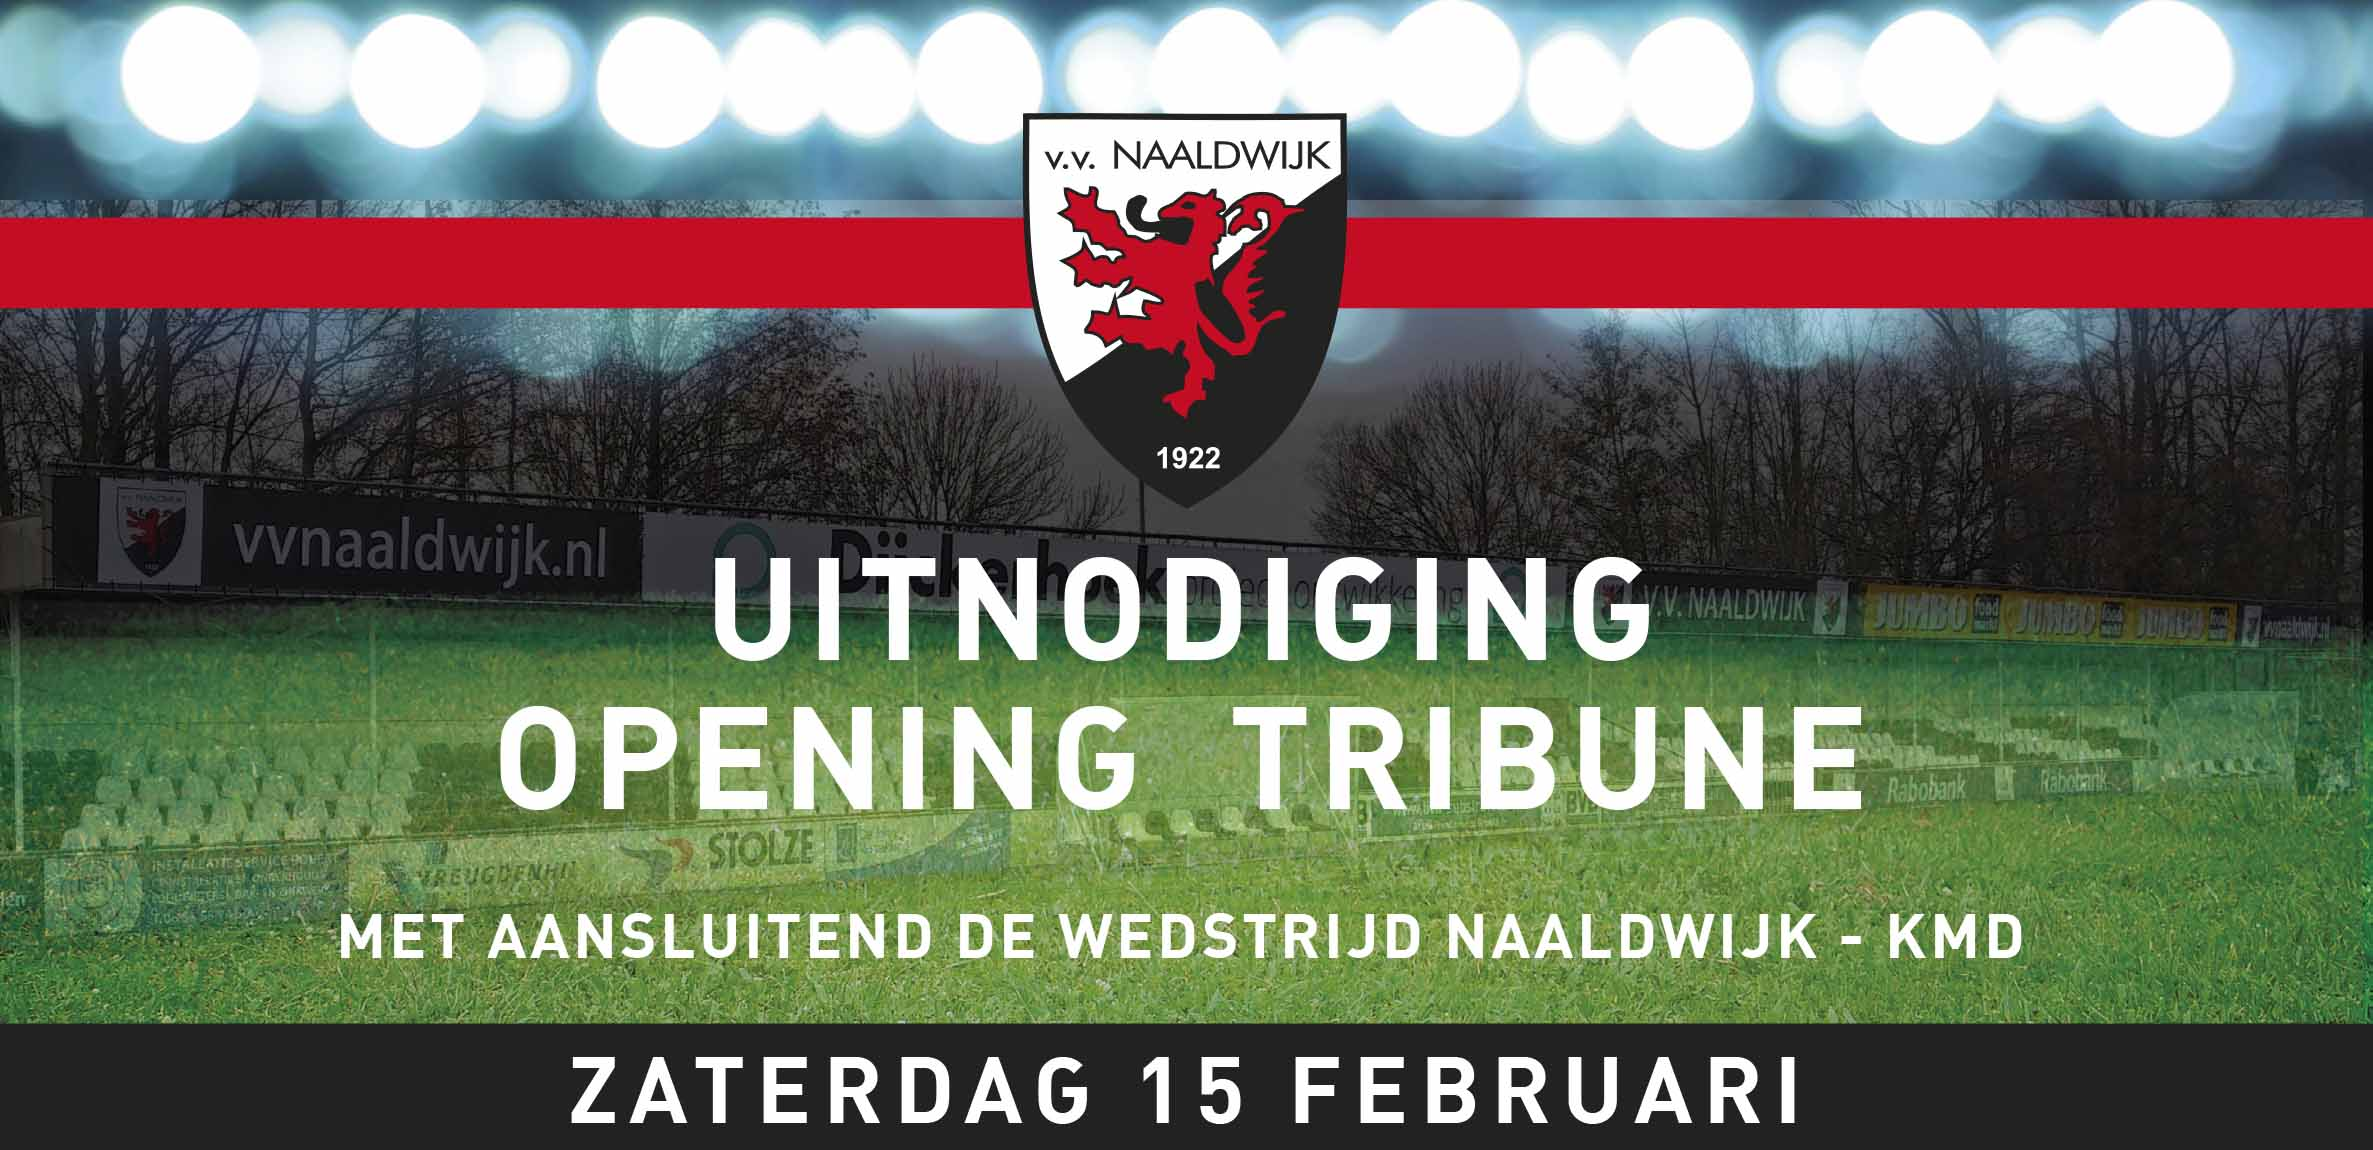 Officiele opening tribune en Super Saturday bij vv Naaldwijk 15 februari 2020